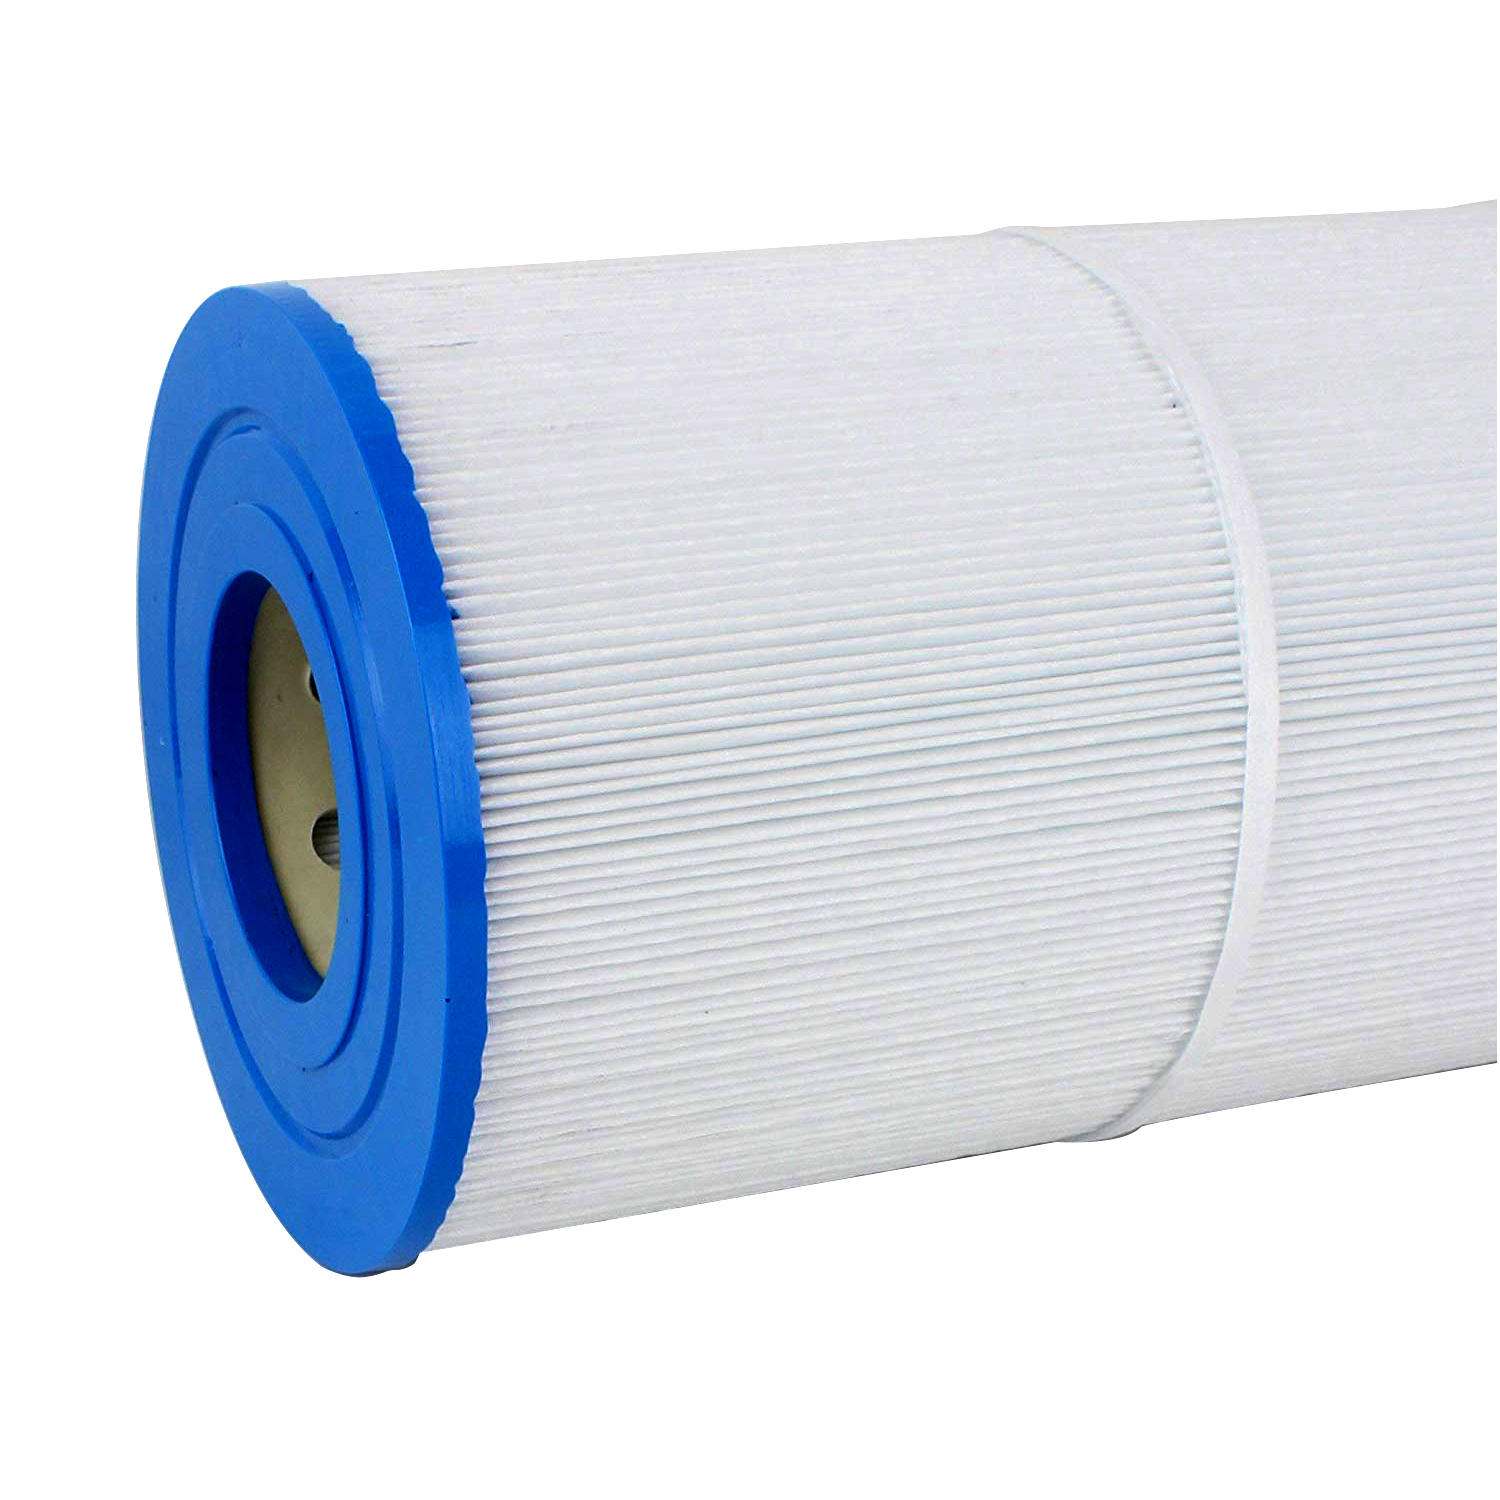 OEM/ODM Supplier Pp Wire Wound Water Filter Cartridge -